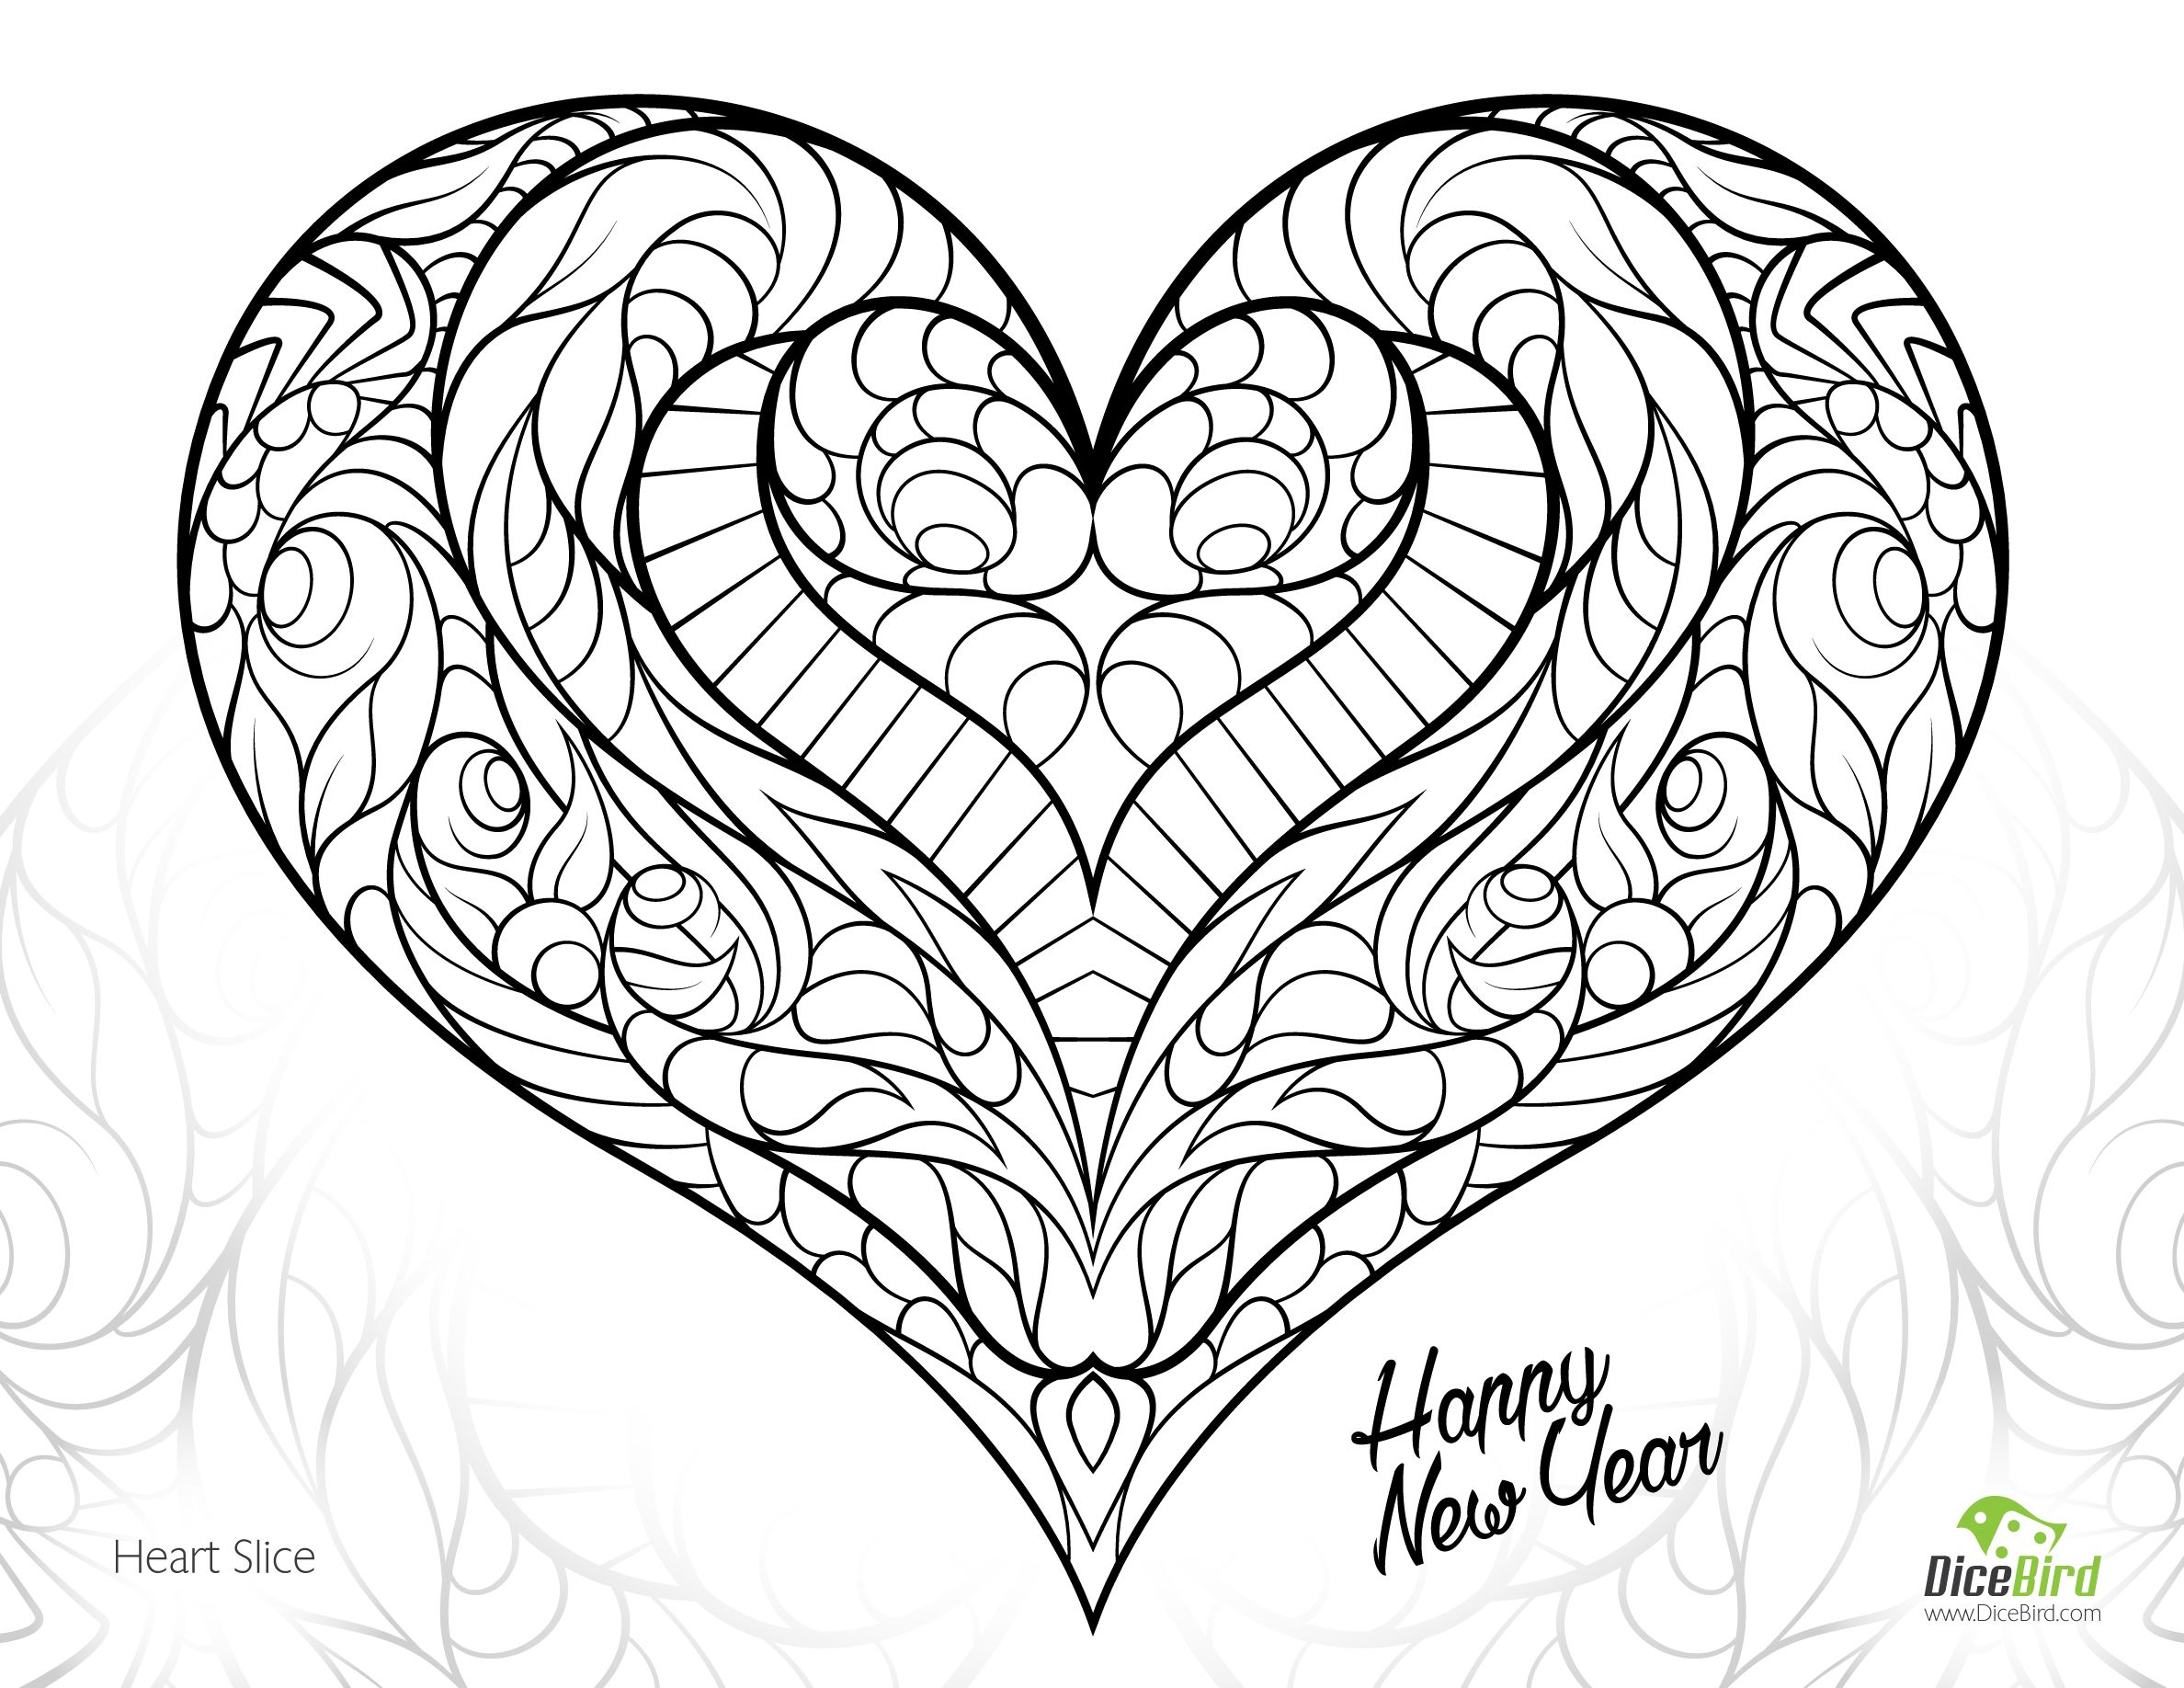 2376x1836 Mandala Coloring Pages Hearts Copy Heart Slice Free Adult Coloring